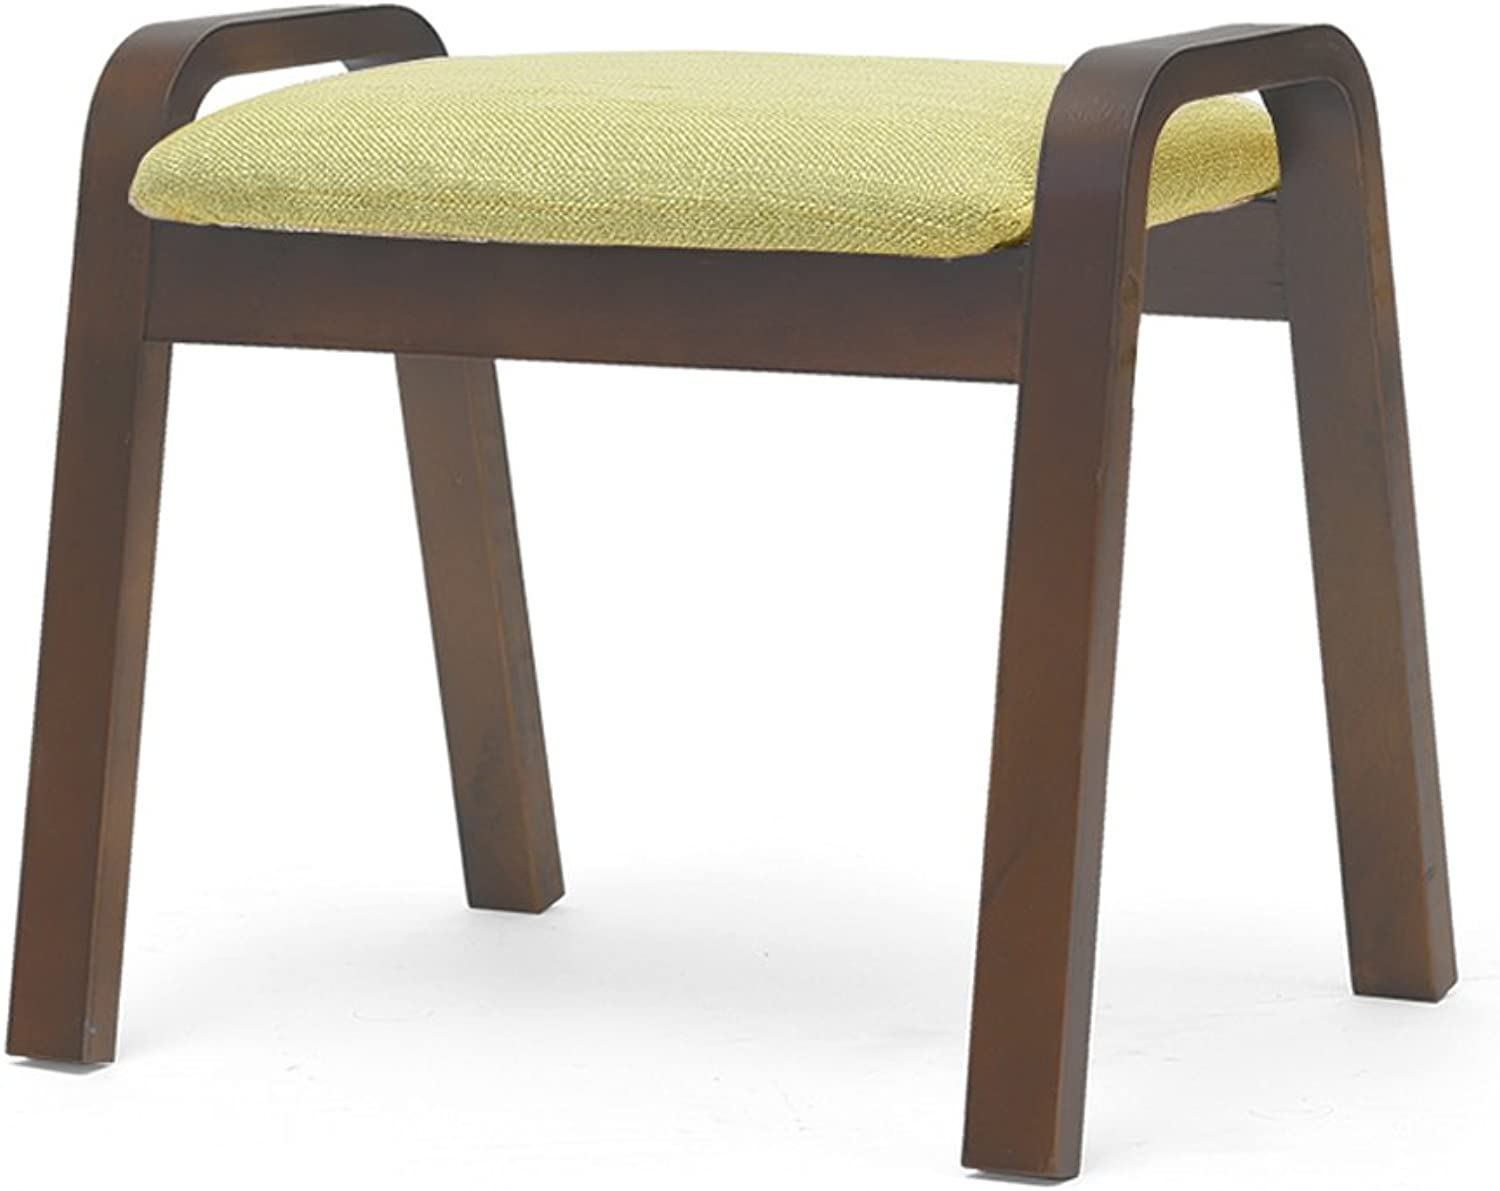 Home Stools, shoes Benches, Stylish Living Room Coffee Tables, Low Stools, Sofa Footstools, Solid Wood Stools, Adult Benches, Removable And Washable In Multiple colors (L  44.5cm, W  33cm, H  36cm ) ( color   D )